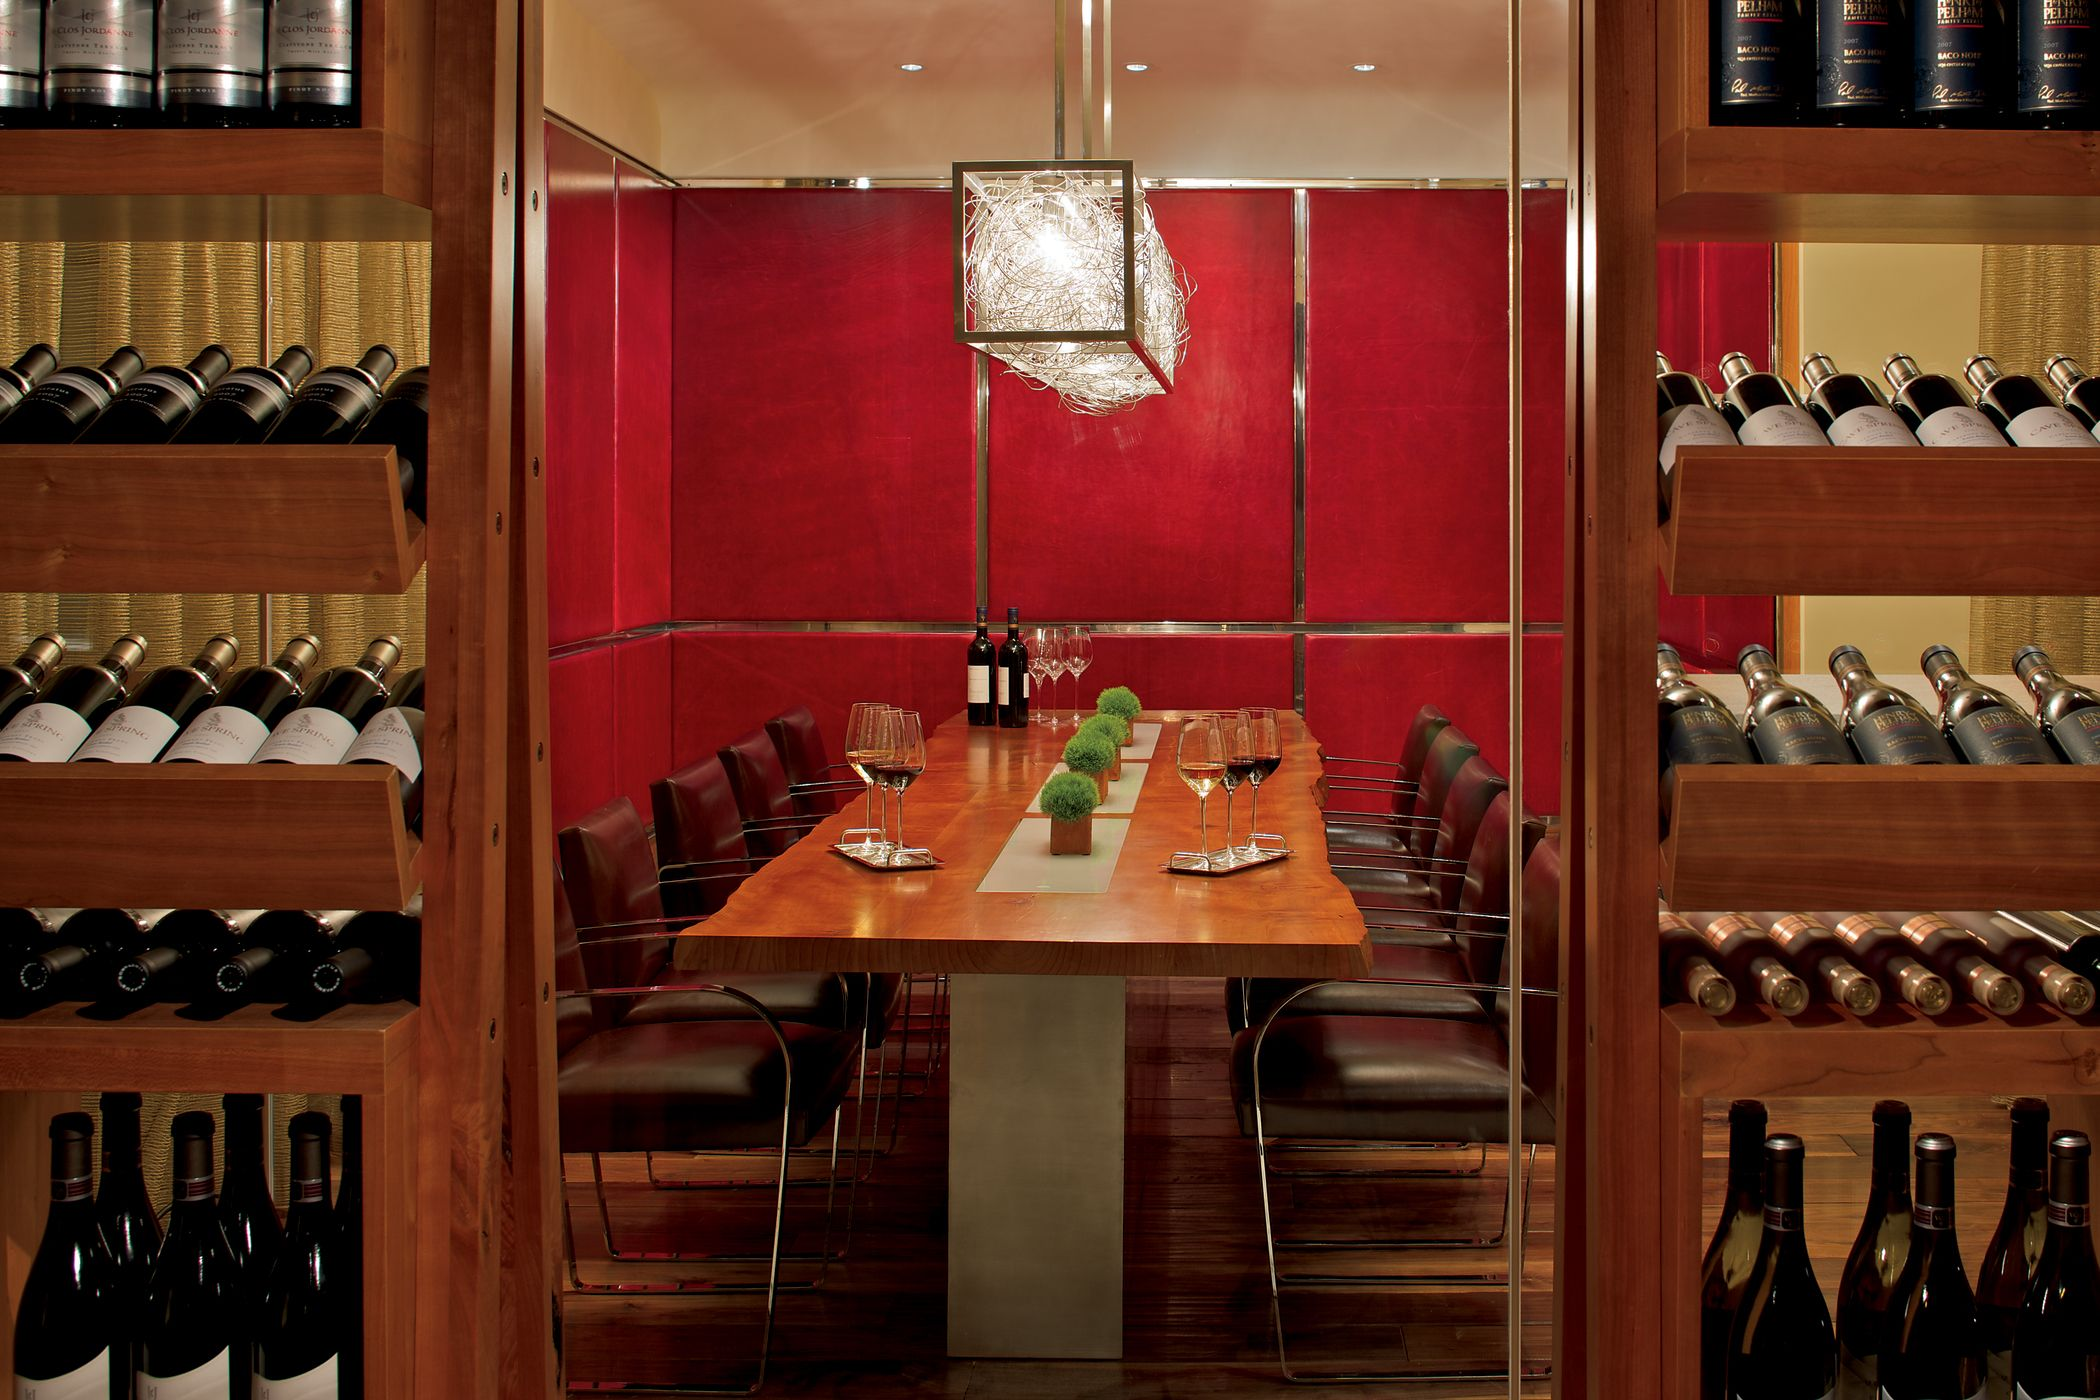 In Toca At The Ritz Carlton Toronto Enjoy Dinner With A View From The Private Dining Room Looking Into Private Dining Room Restaurant Lighting Private Dining